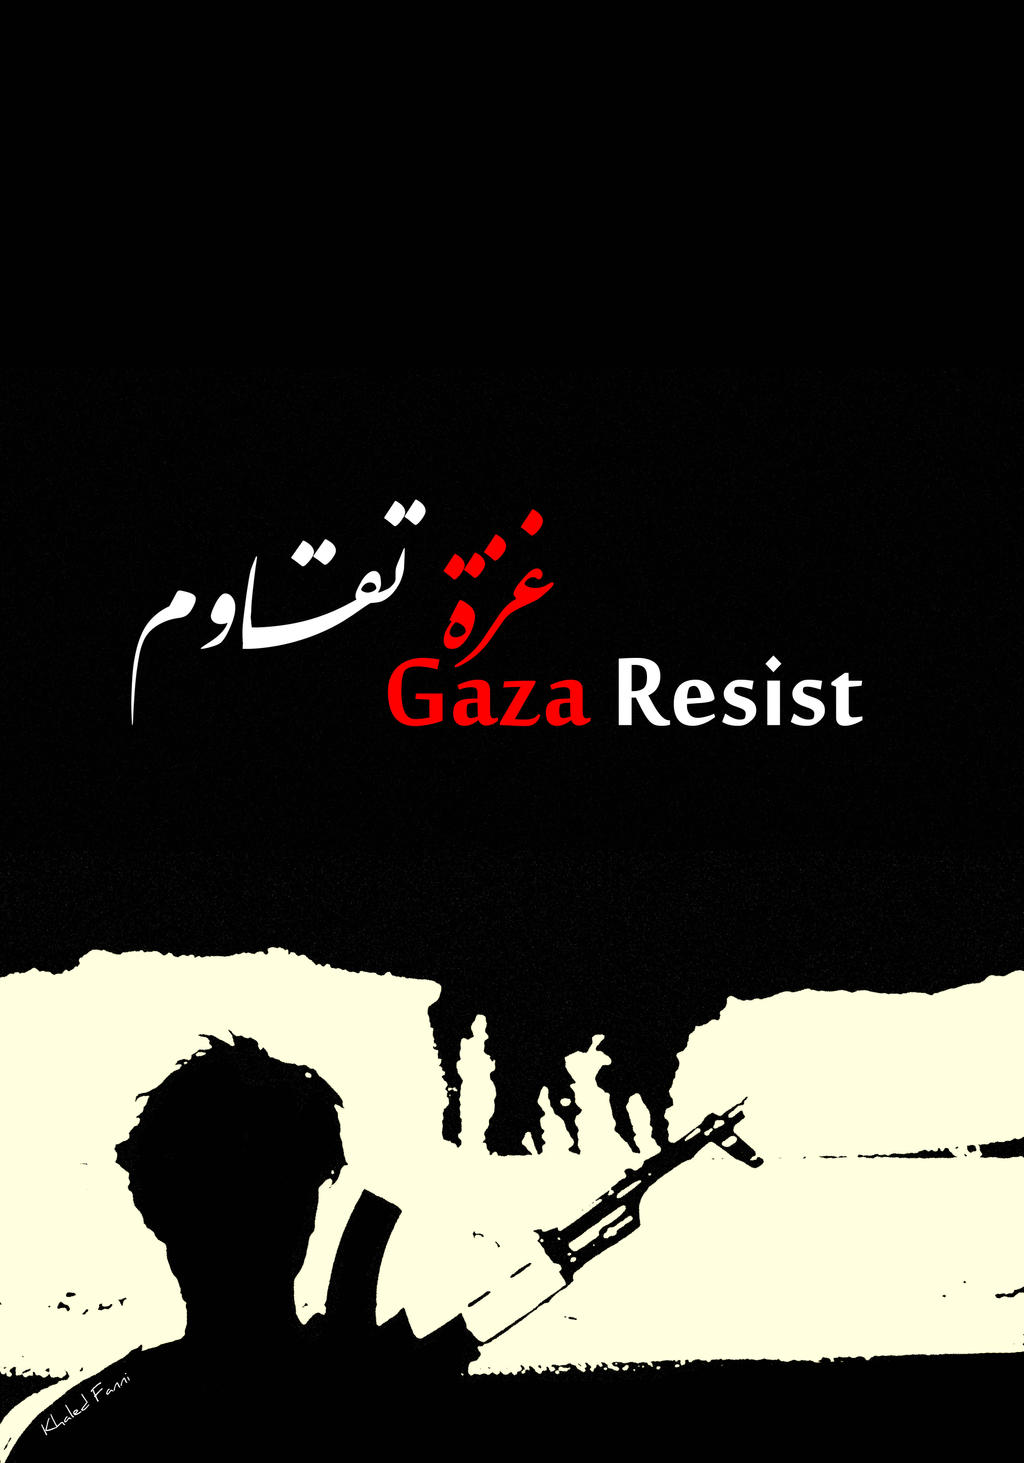 Gaza Resist by KhaledFanni